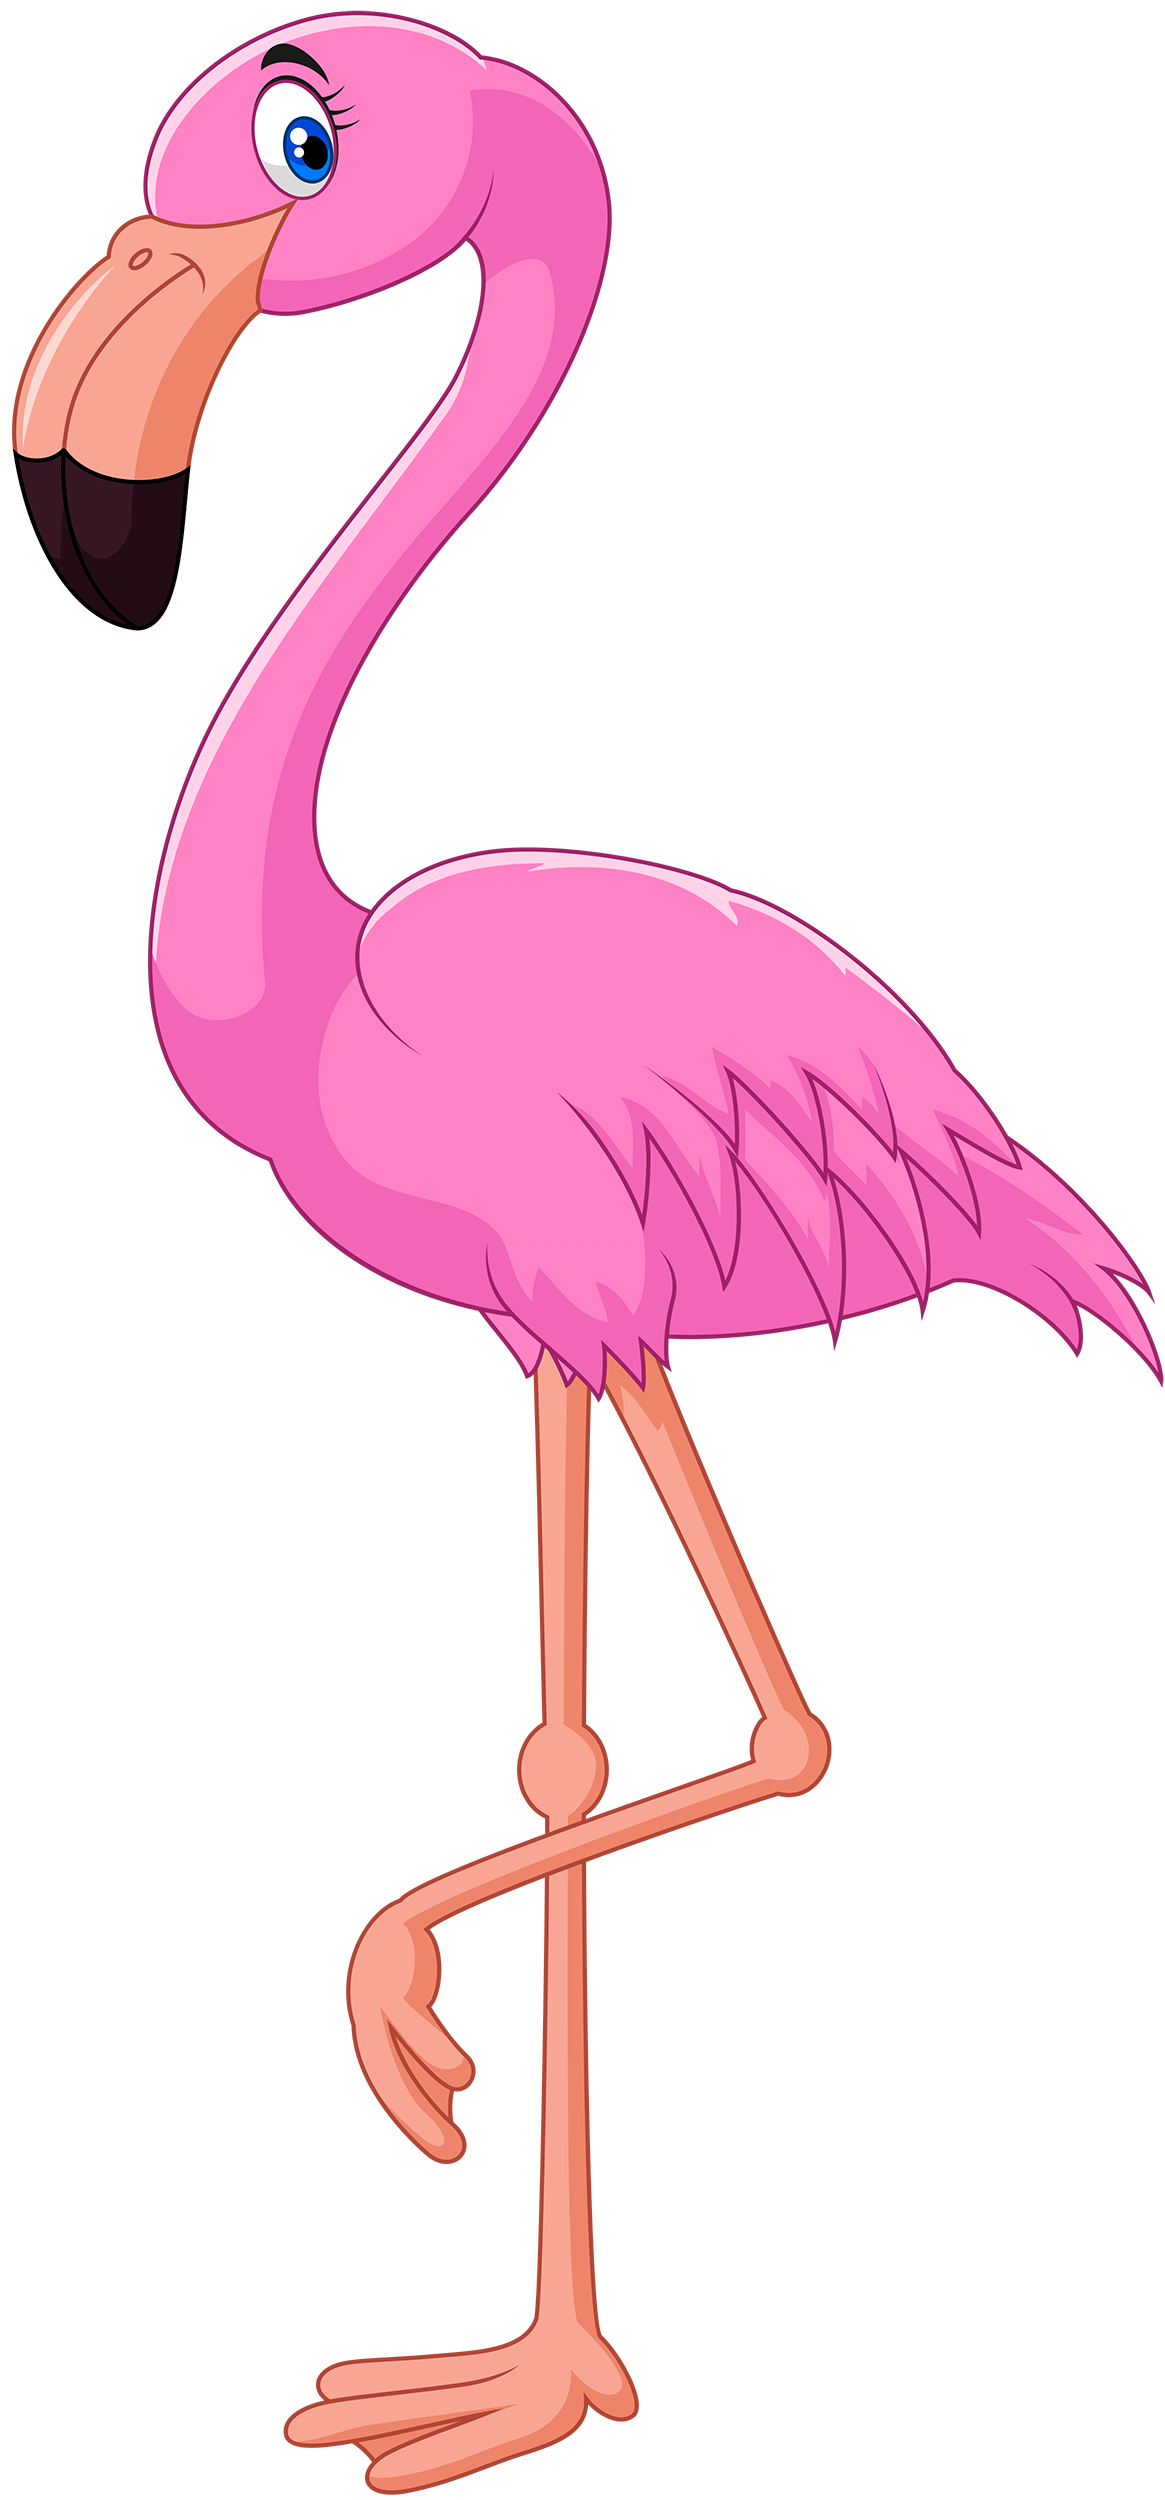 flamingo transparent whimsical